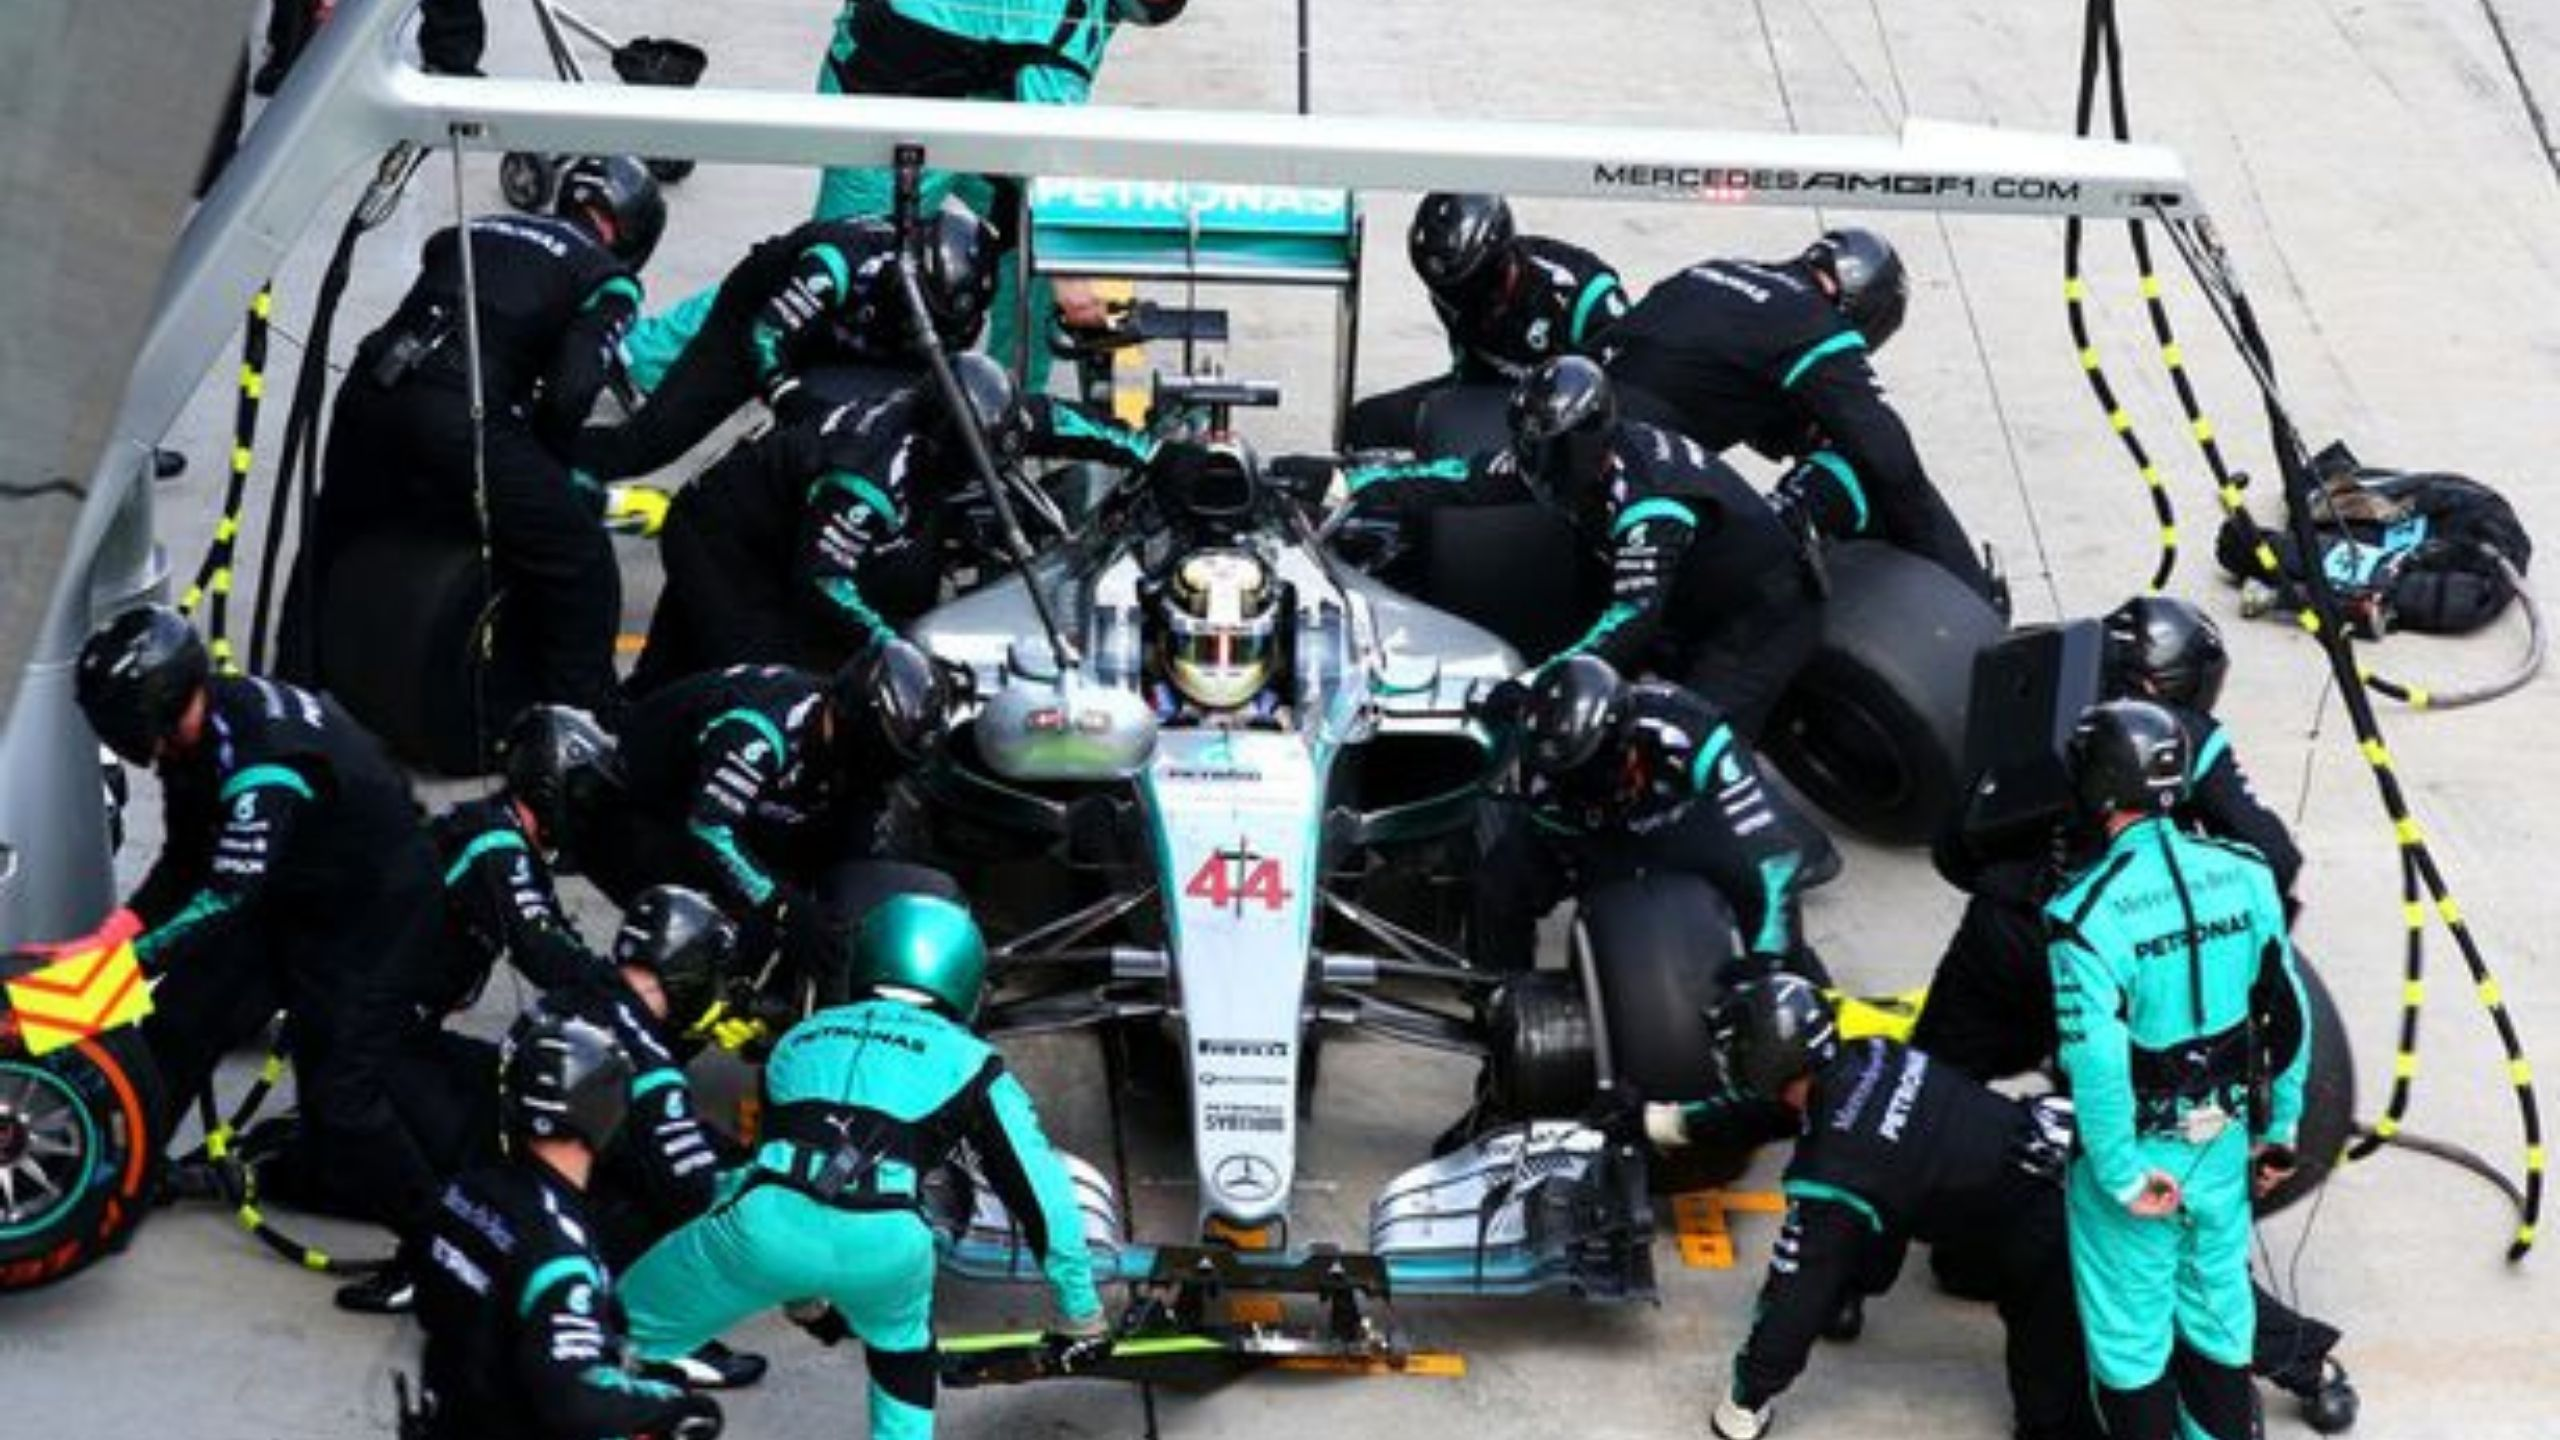 Lewis Hamilton contract: Mercedes boss Toto Wolff confirms when reigning F1 champion will sign contract extension